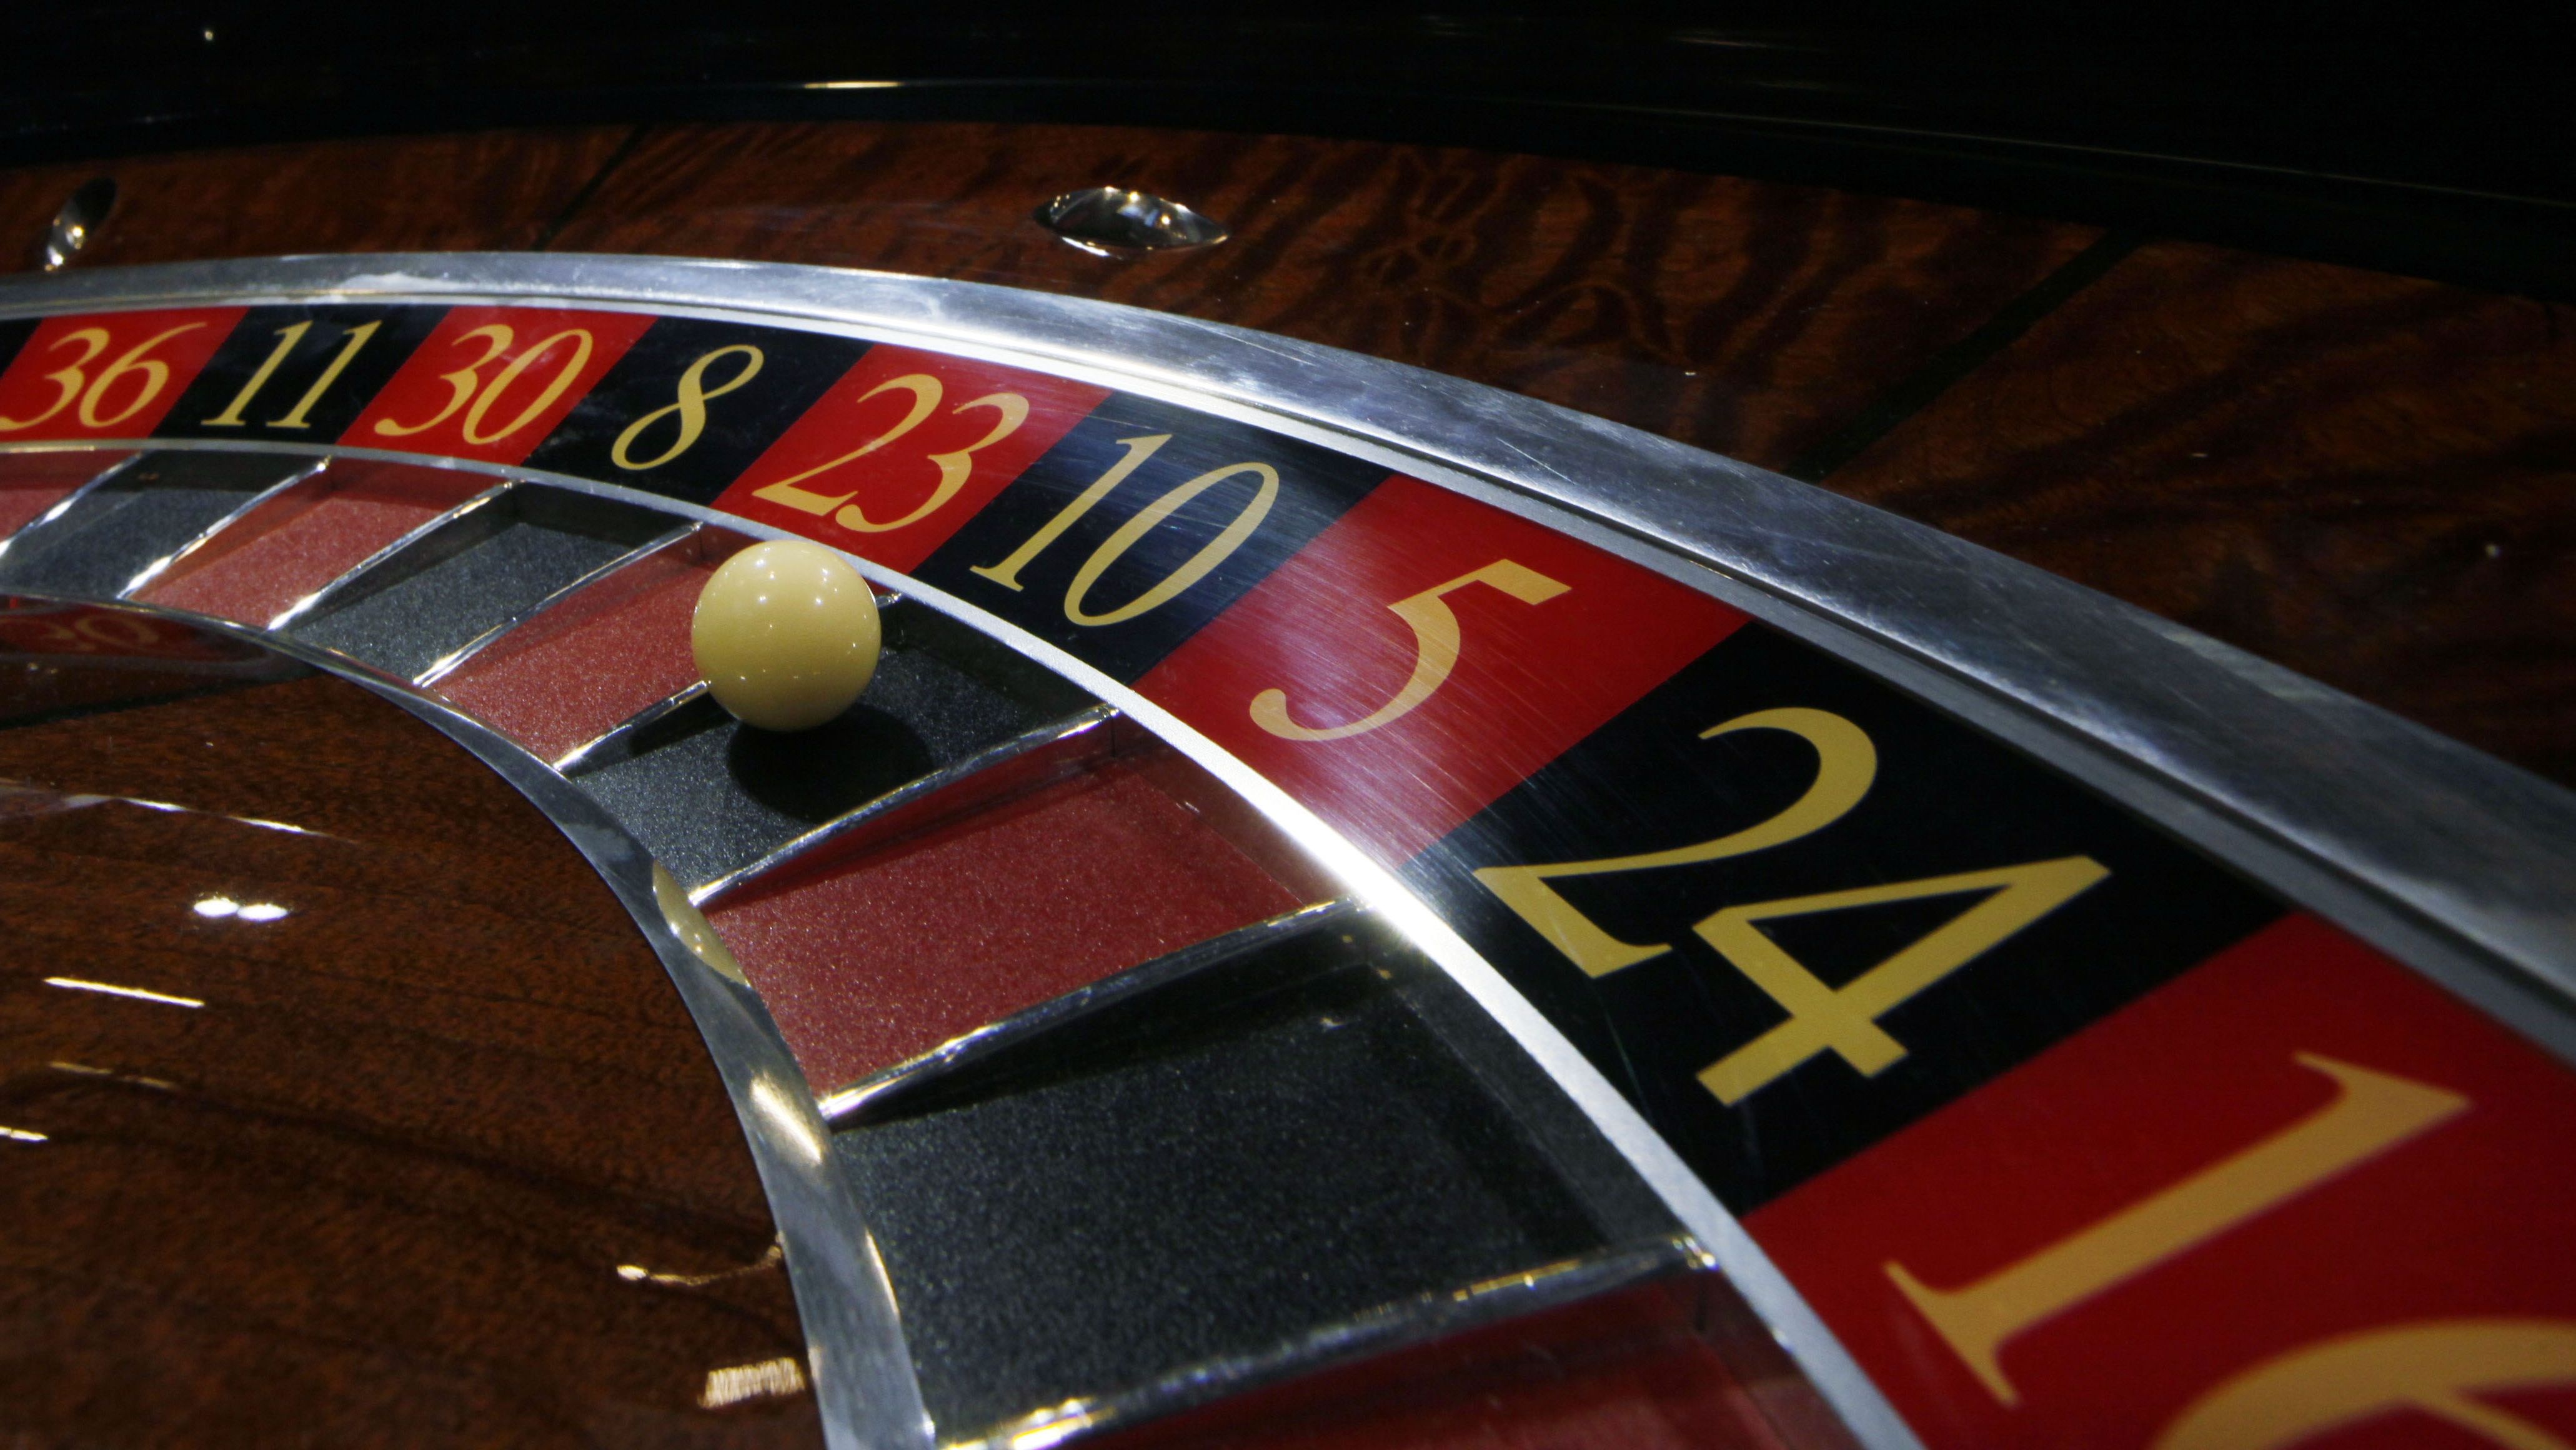 A roulette is displayed during Gaming Expo Asia in Macau Tuesday, May 22, 2012. The event features trade show and conference for Asian gaming market, starting May 22 through May 24. (AP Photo/Kin Cheung)